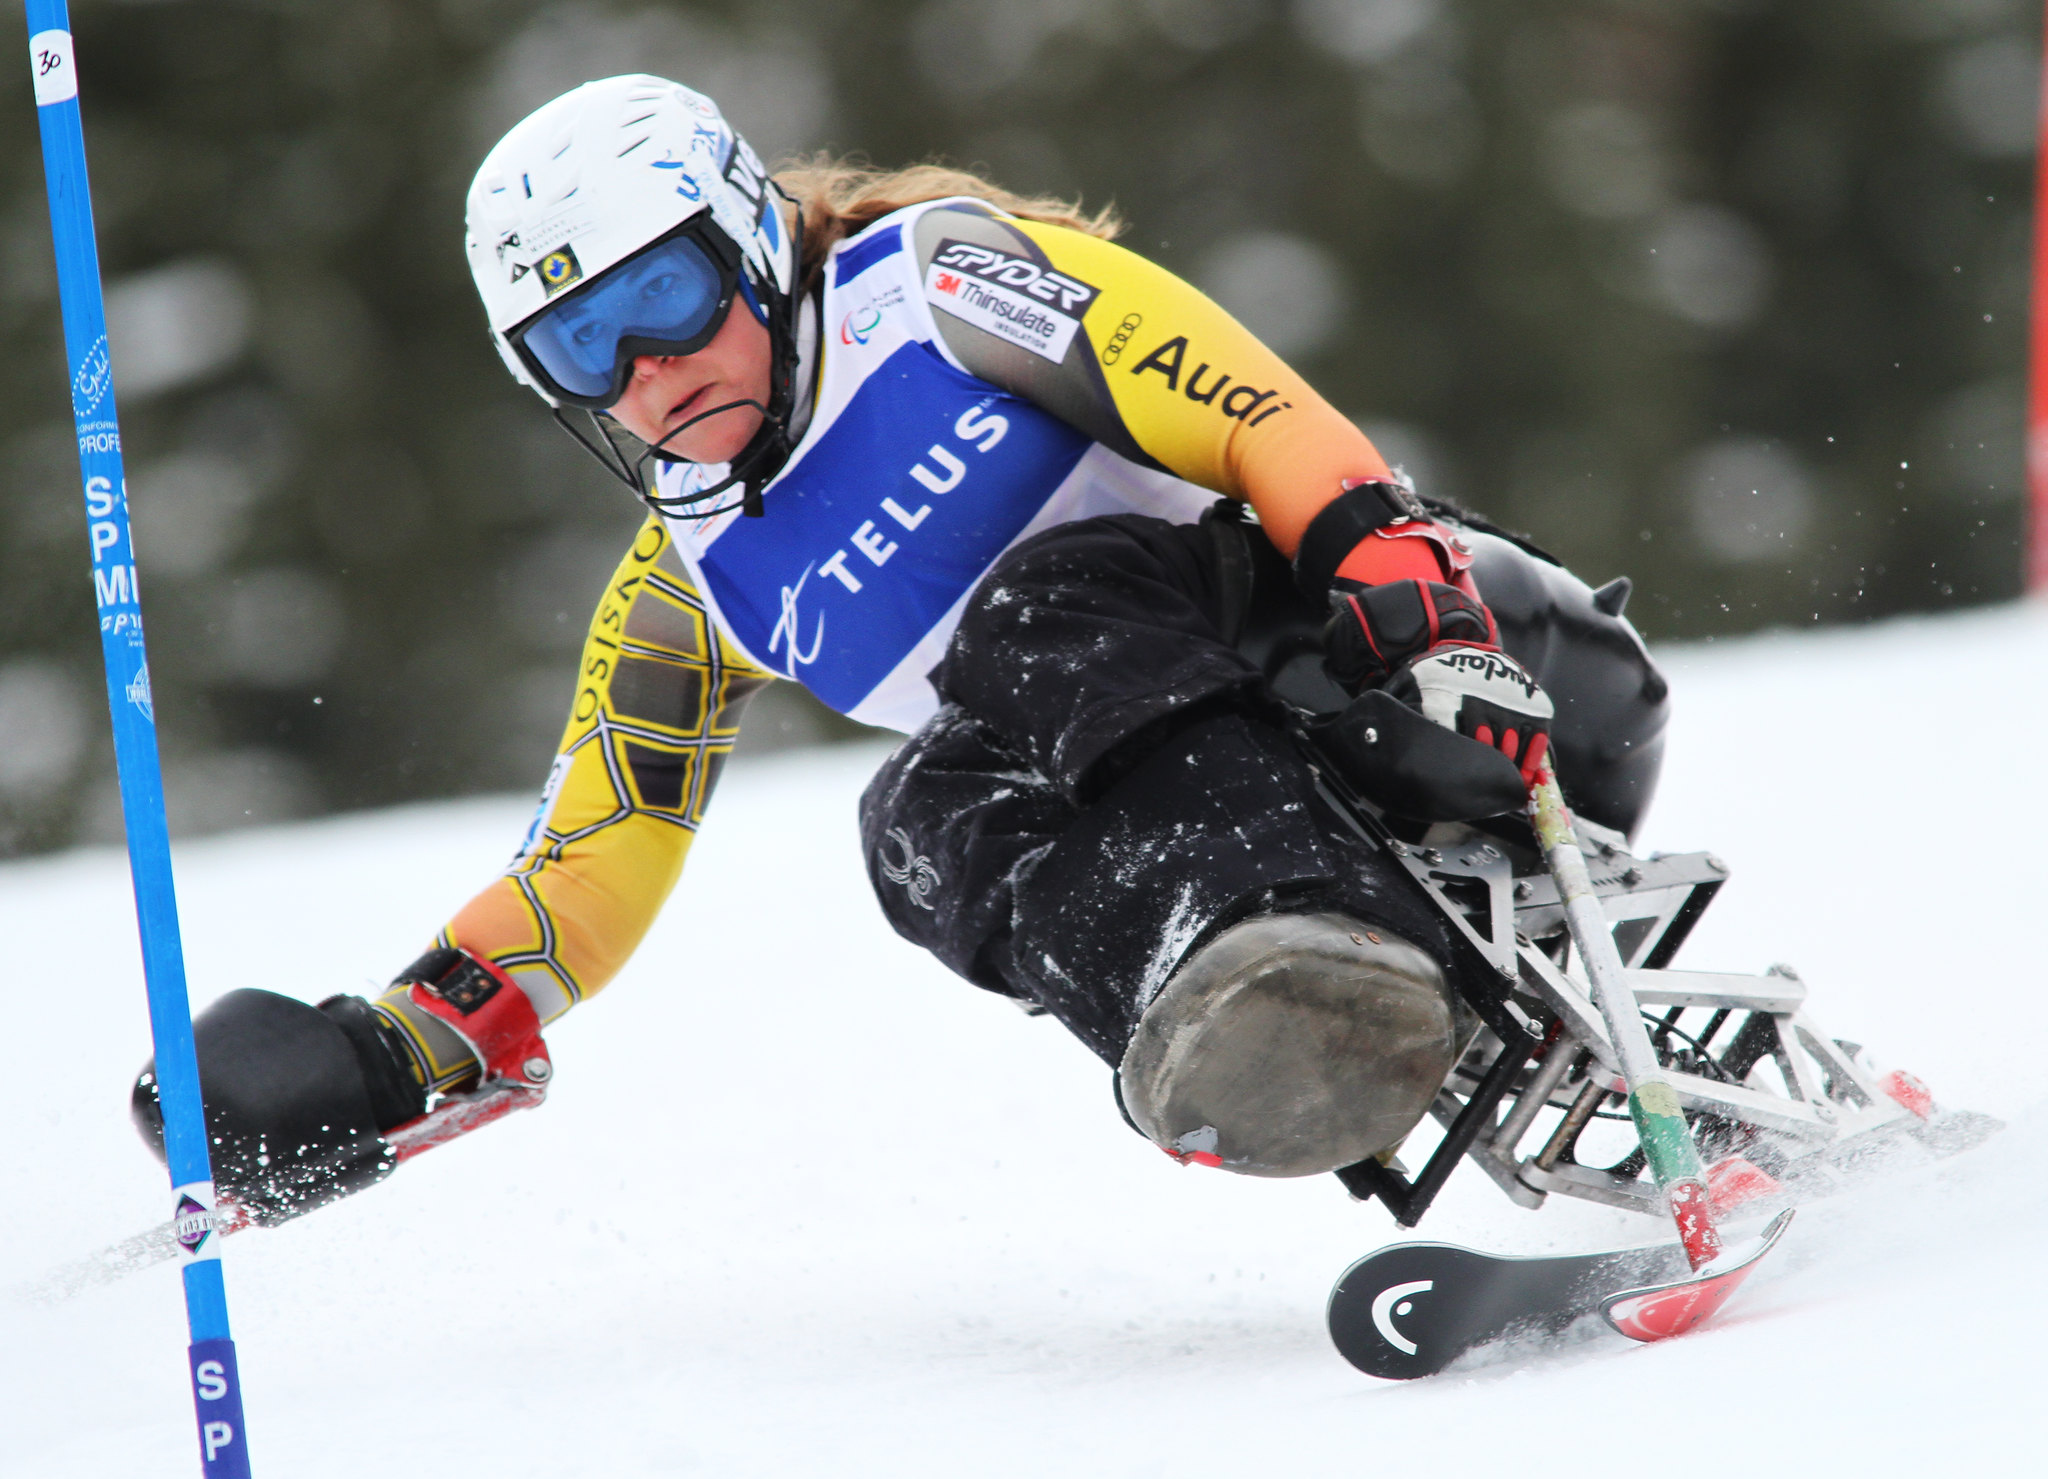 Kimberly Joines in action in an IPC World Cup slalom in Panorama, B.C.